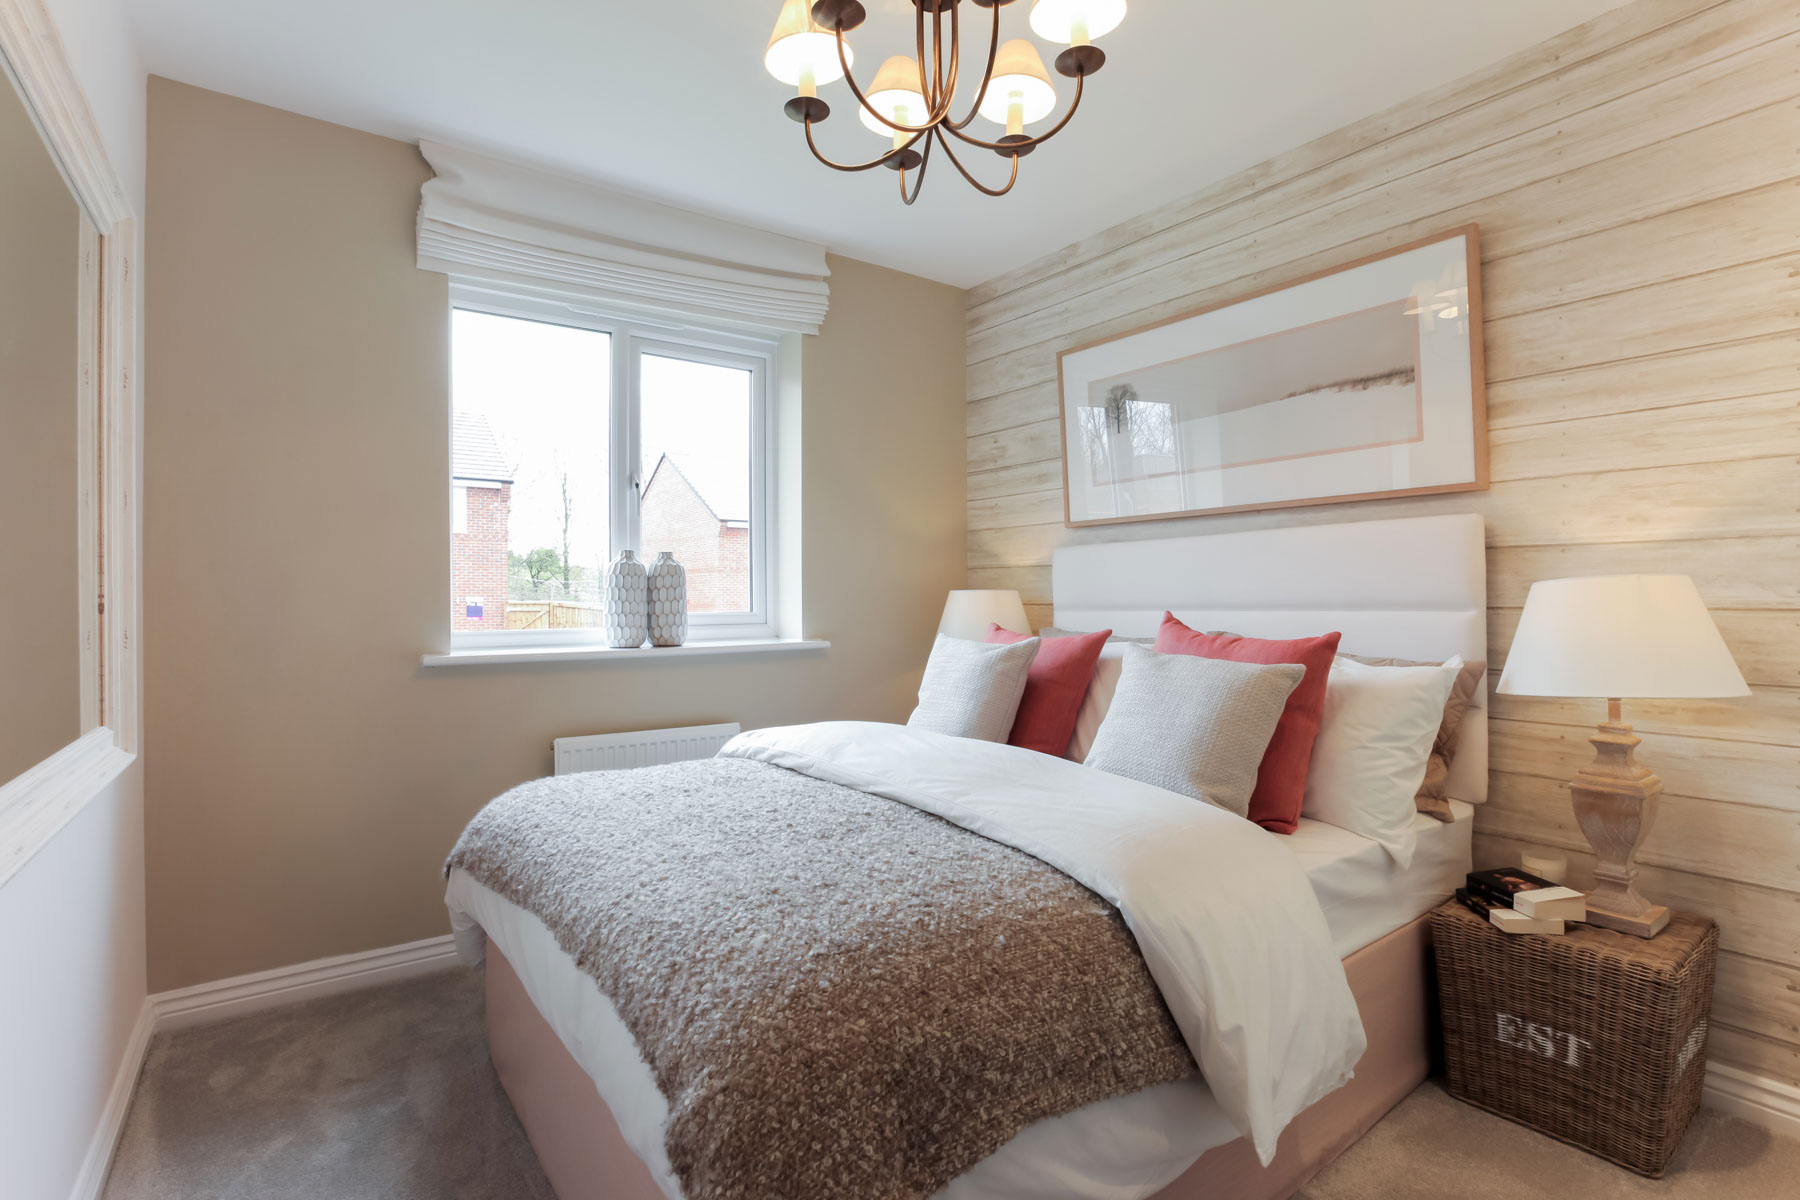 TW Exeter - Cranbrook - Farndale example bedroom 3